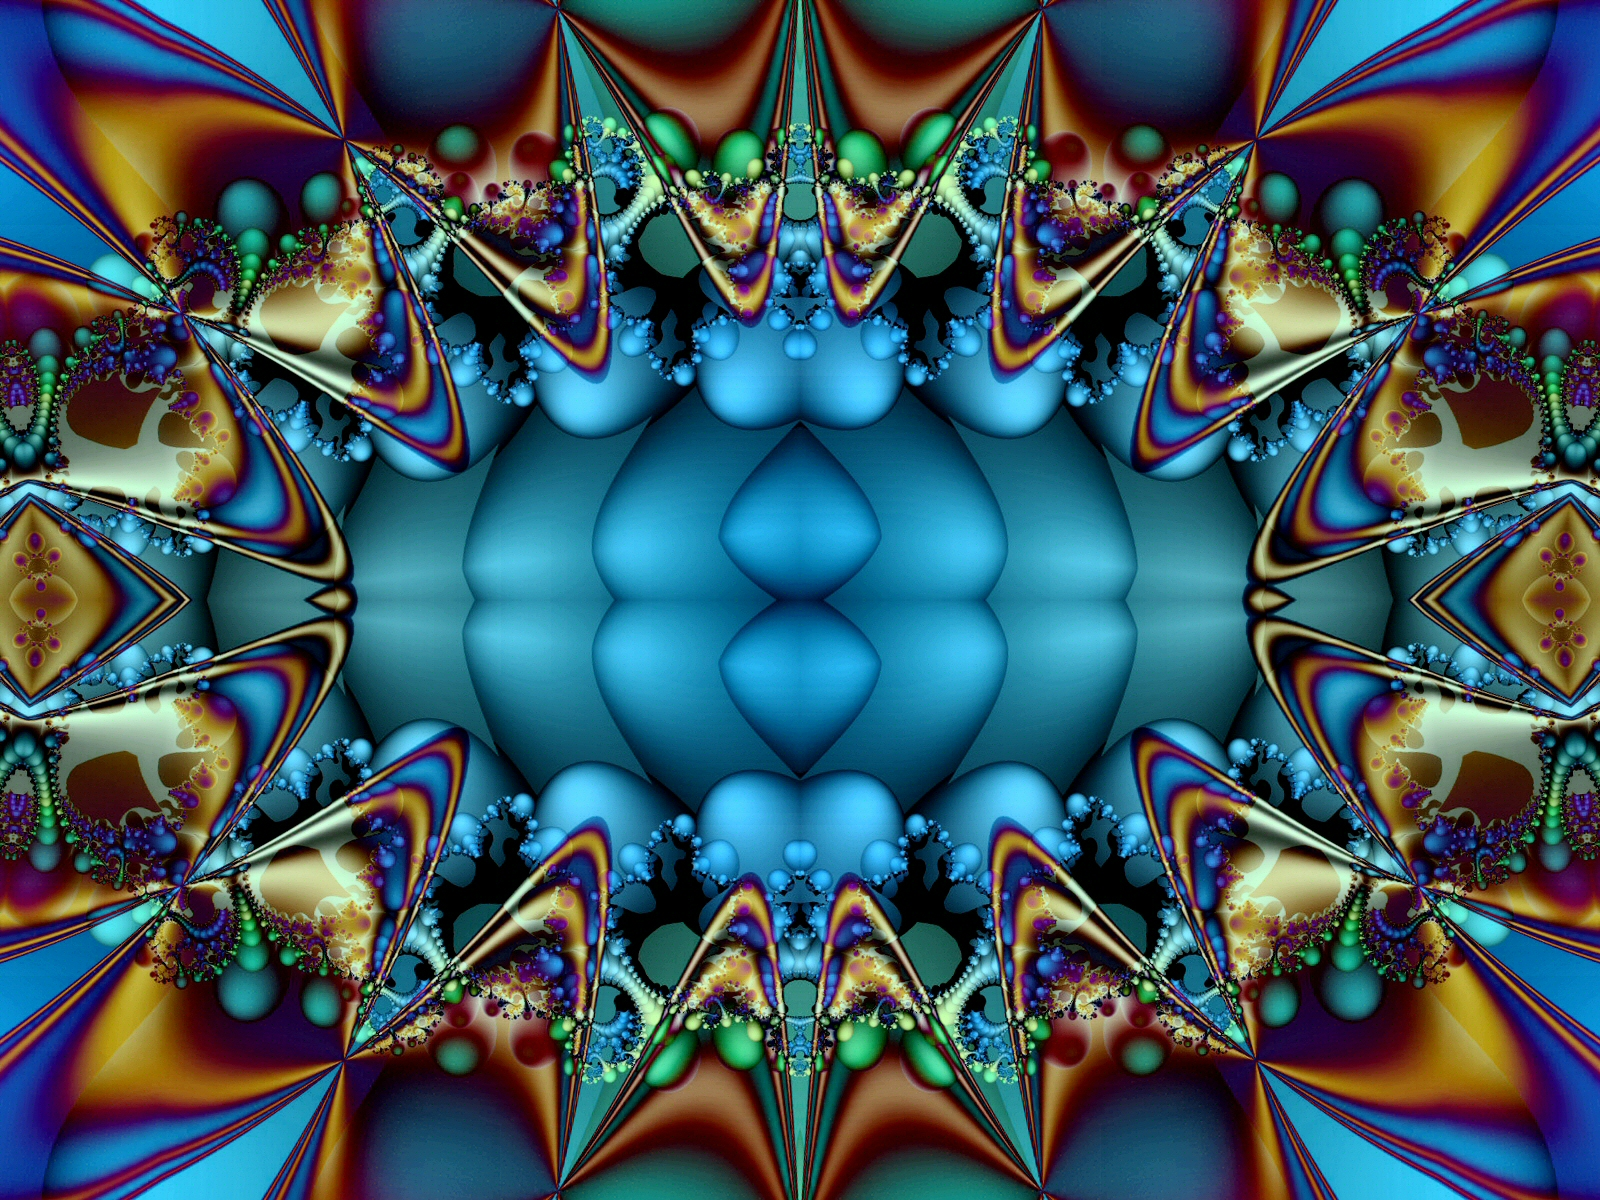 Loops by Thelma1